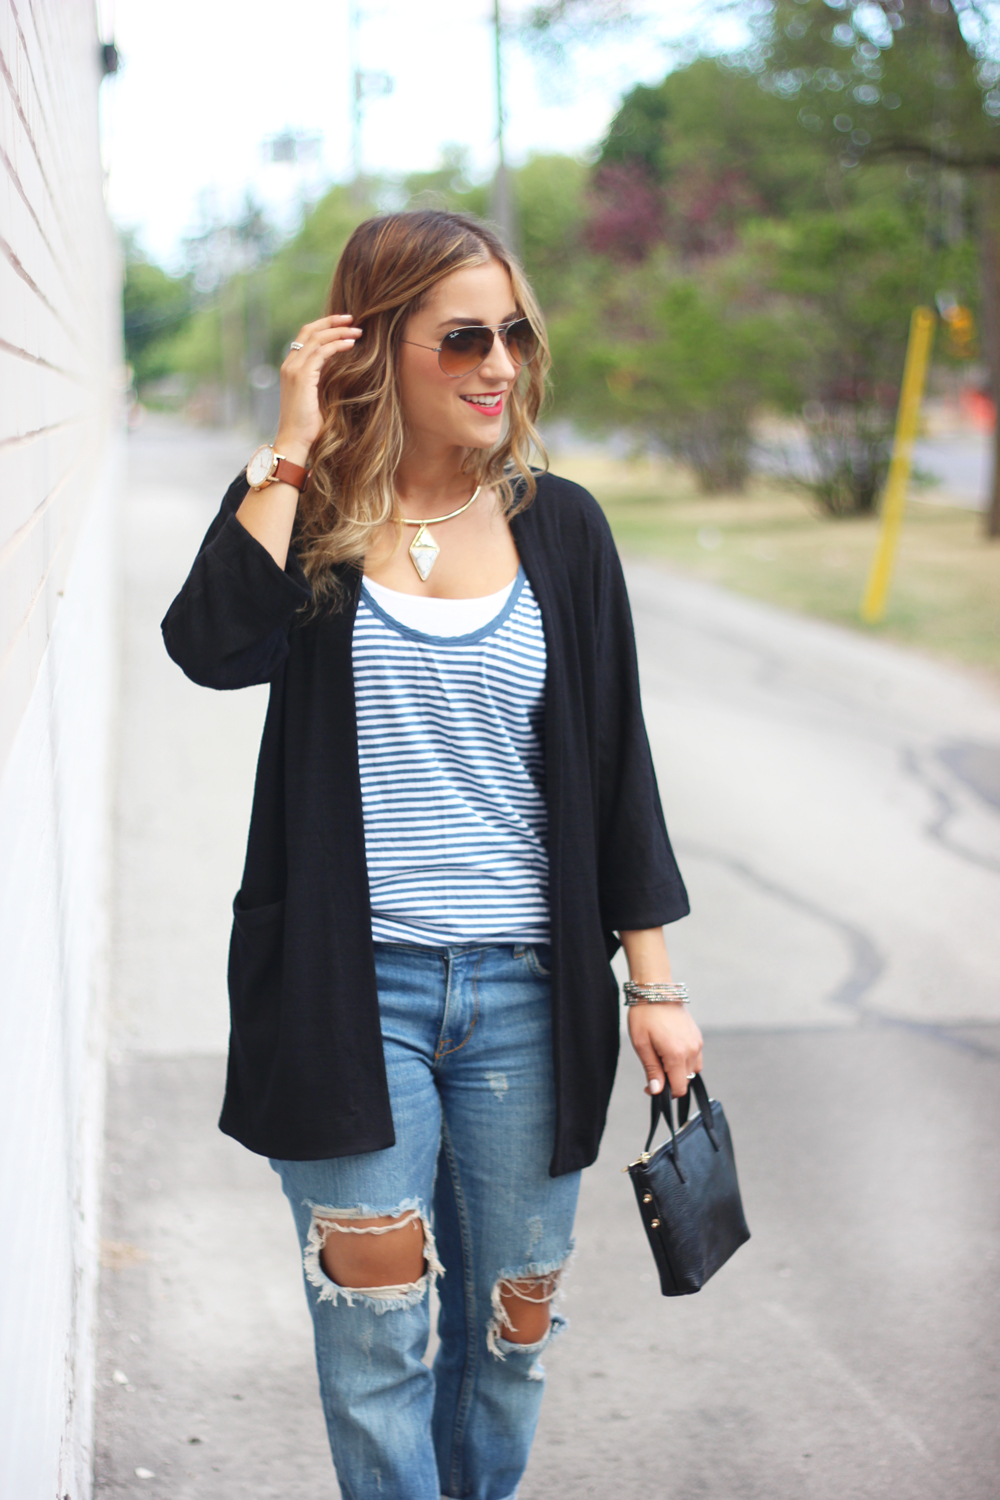 Zlata Sweater from Aritzia and Zara Ripped Jeans